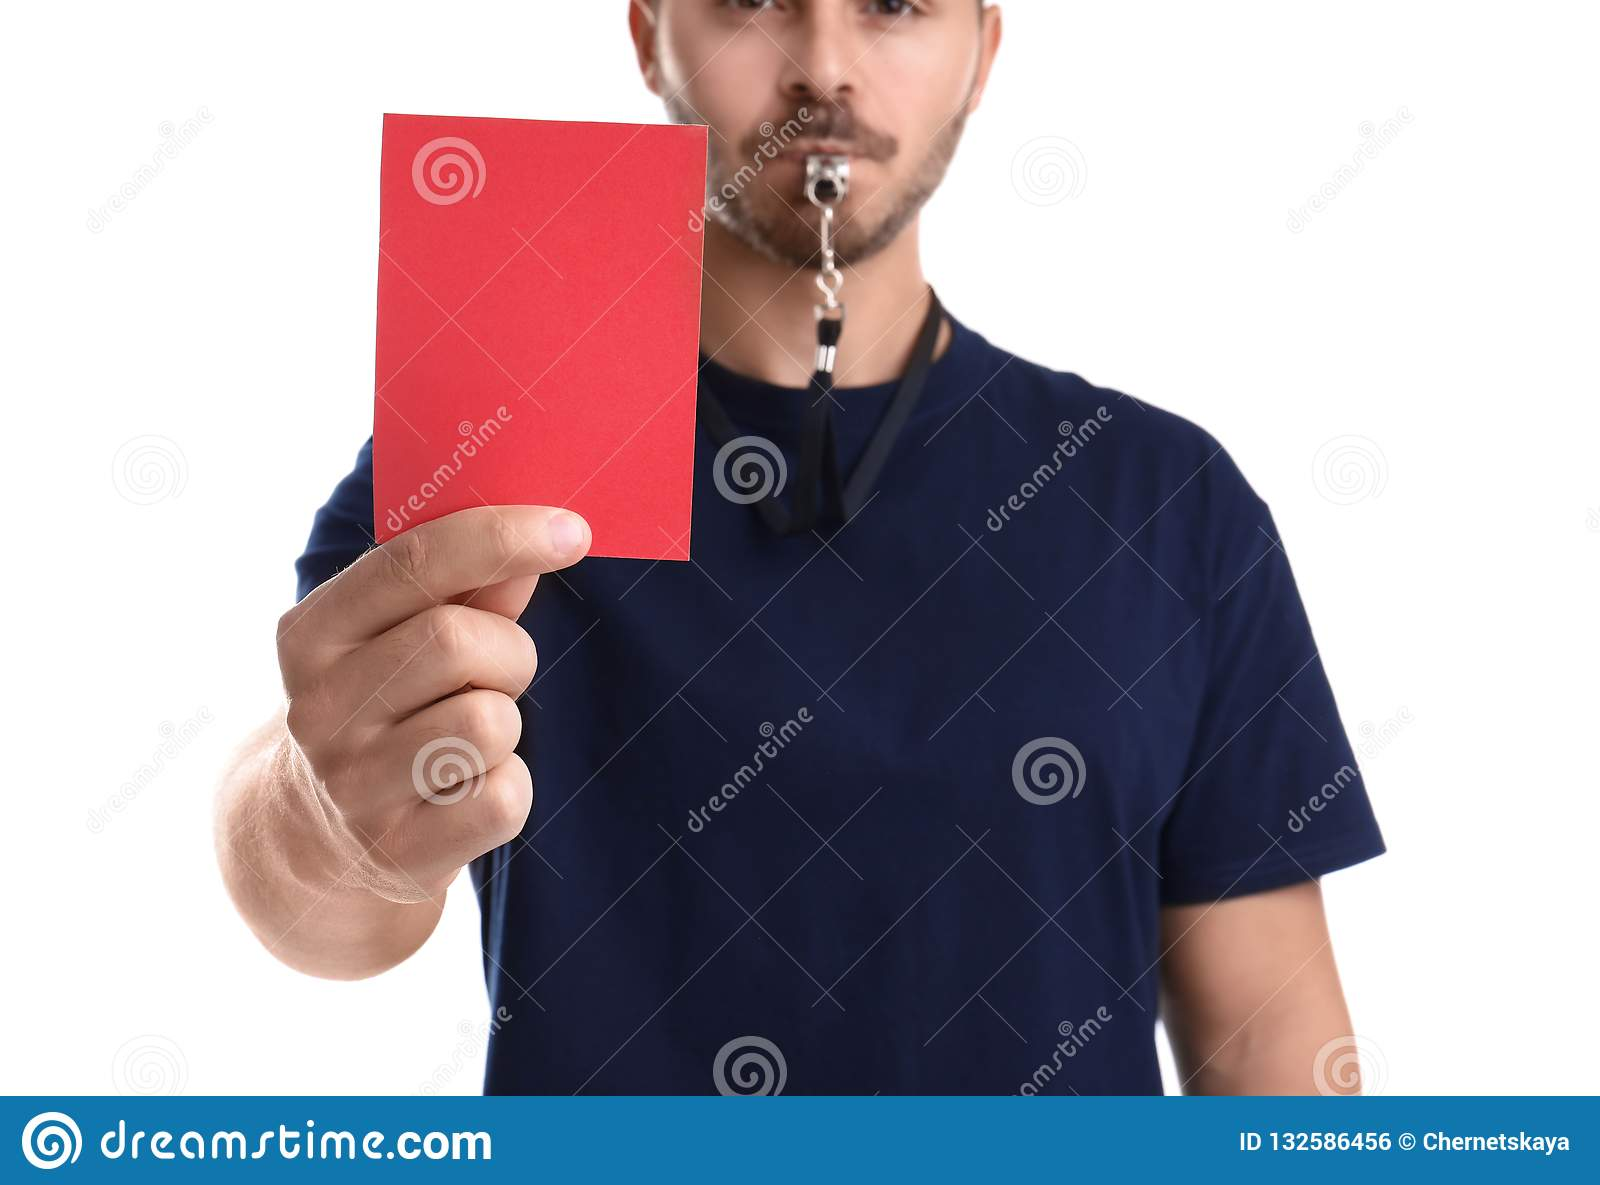 Football referee with whistle holding red card on white background